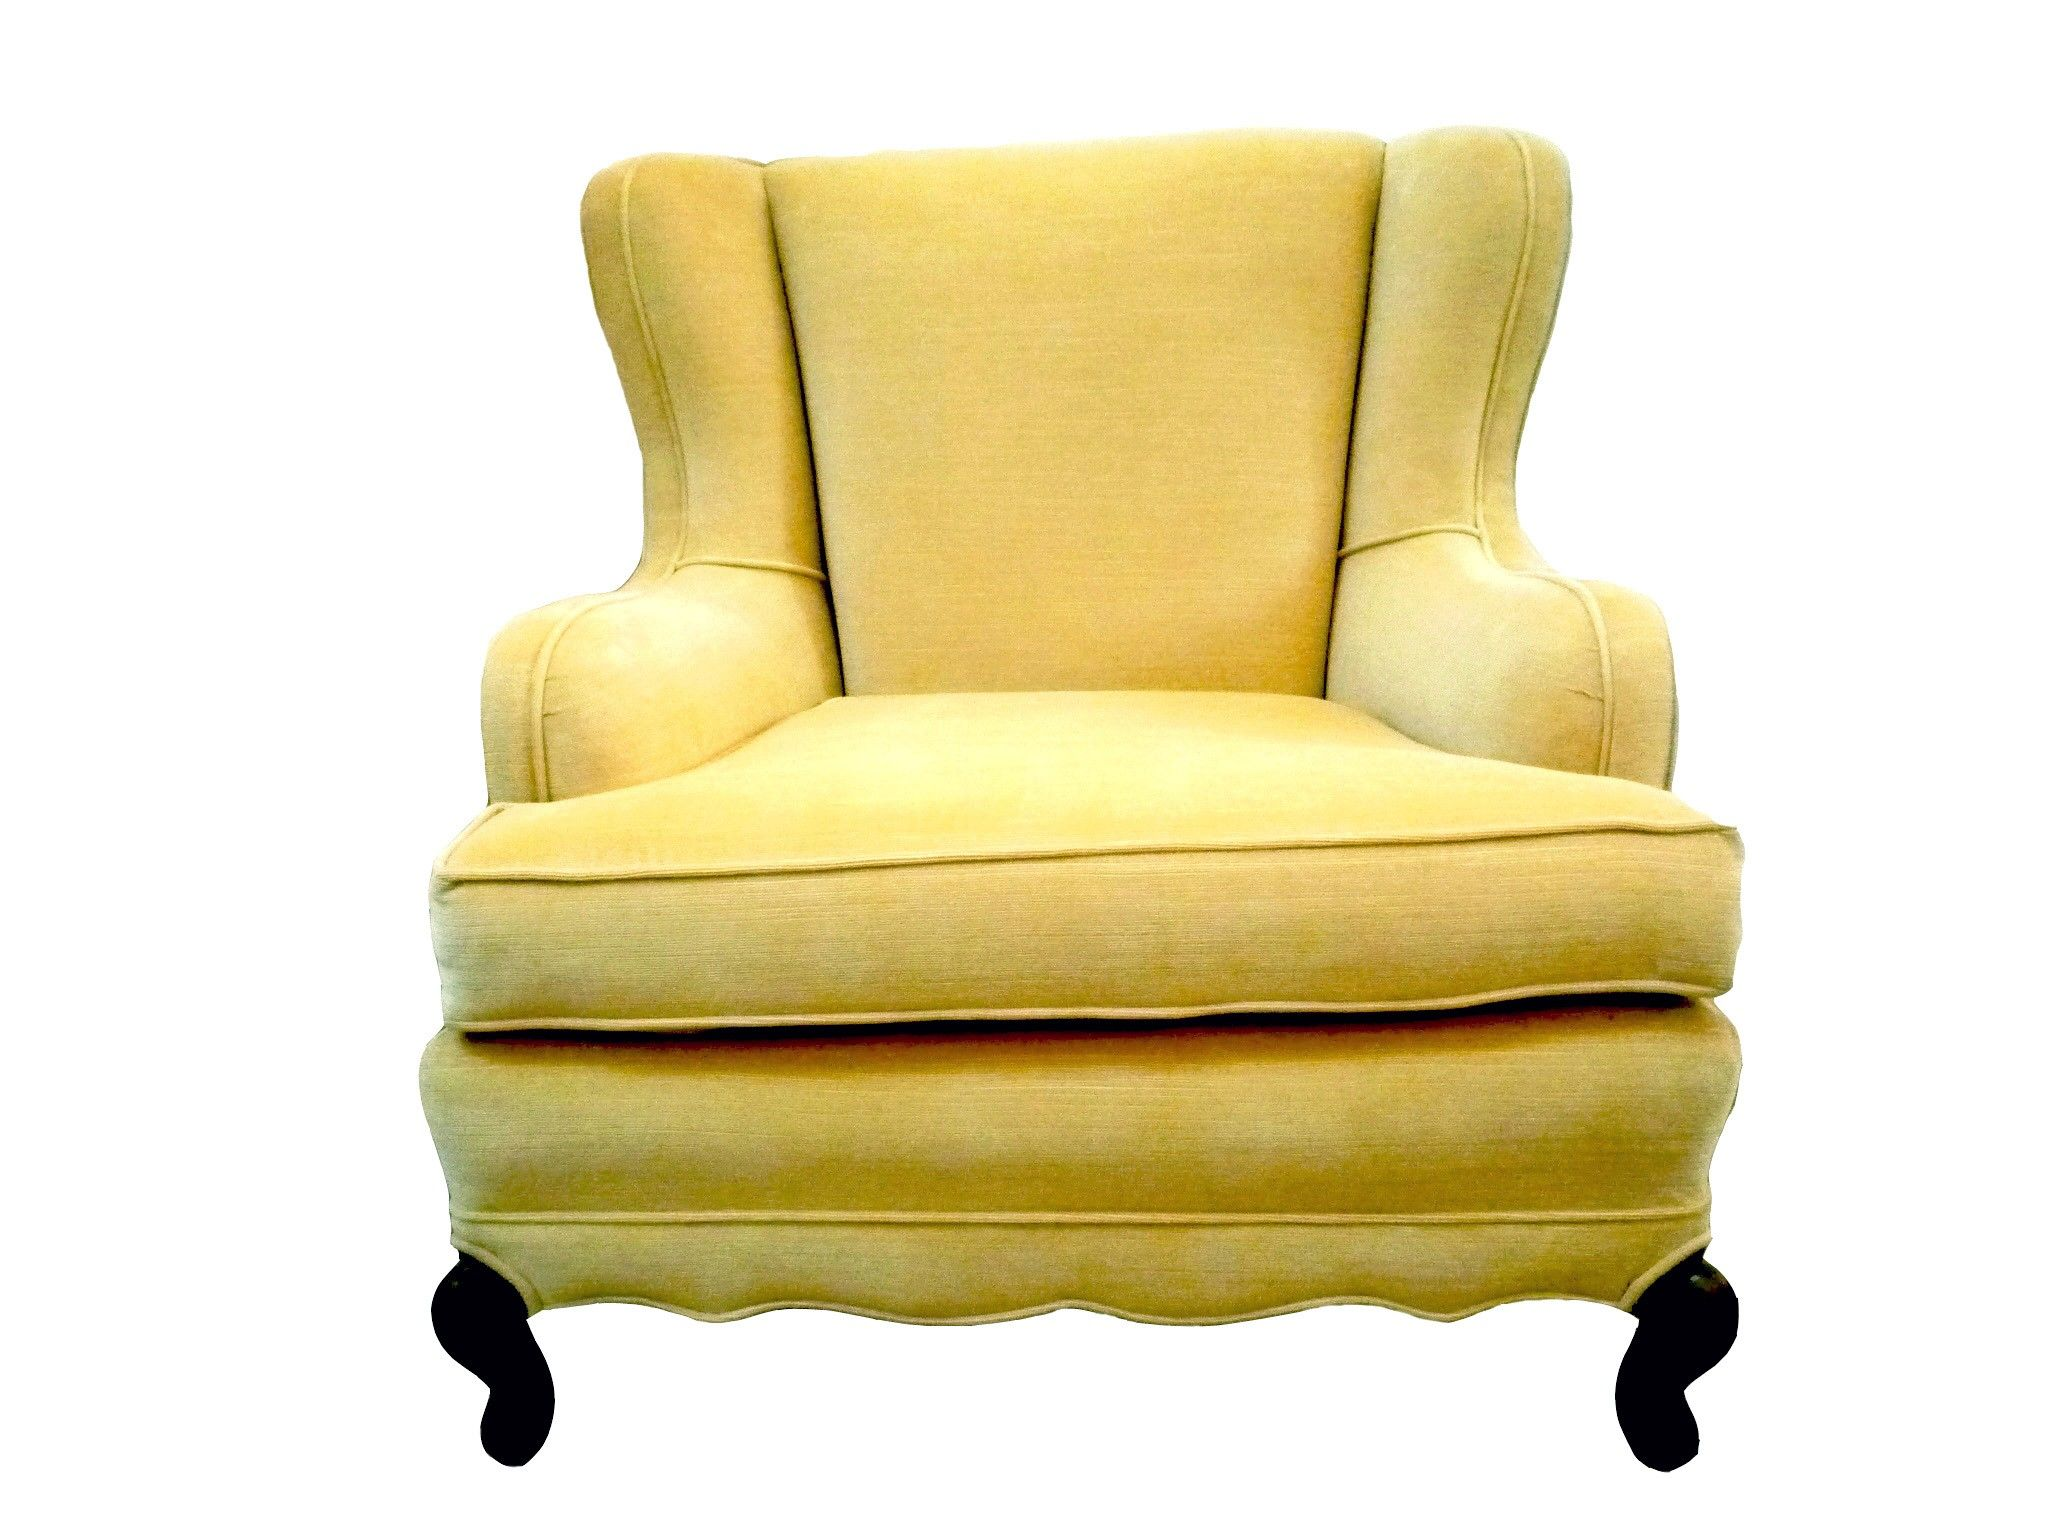 vintage mustard yellow chair For the Home